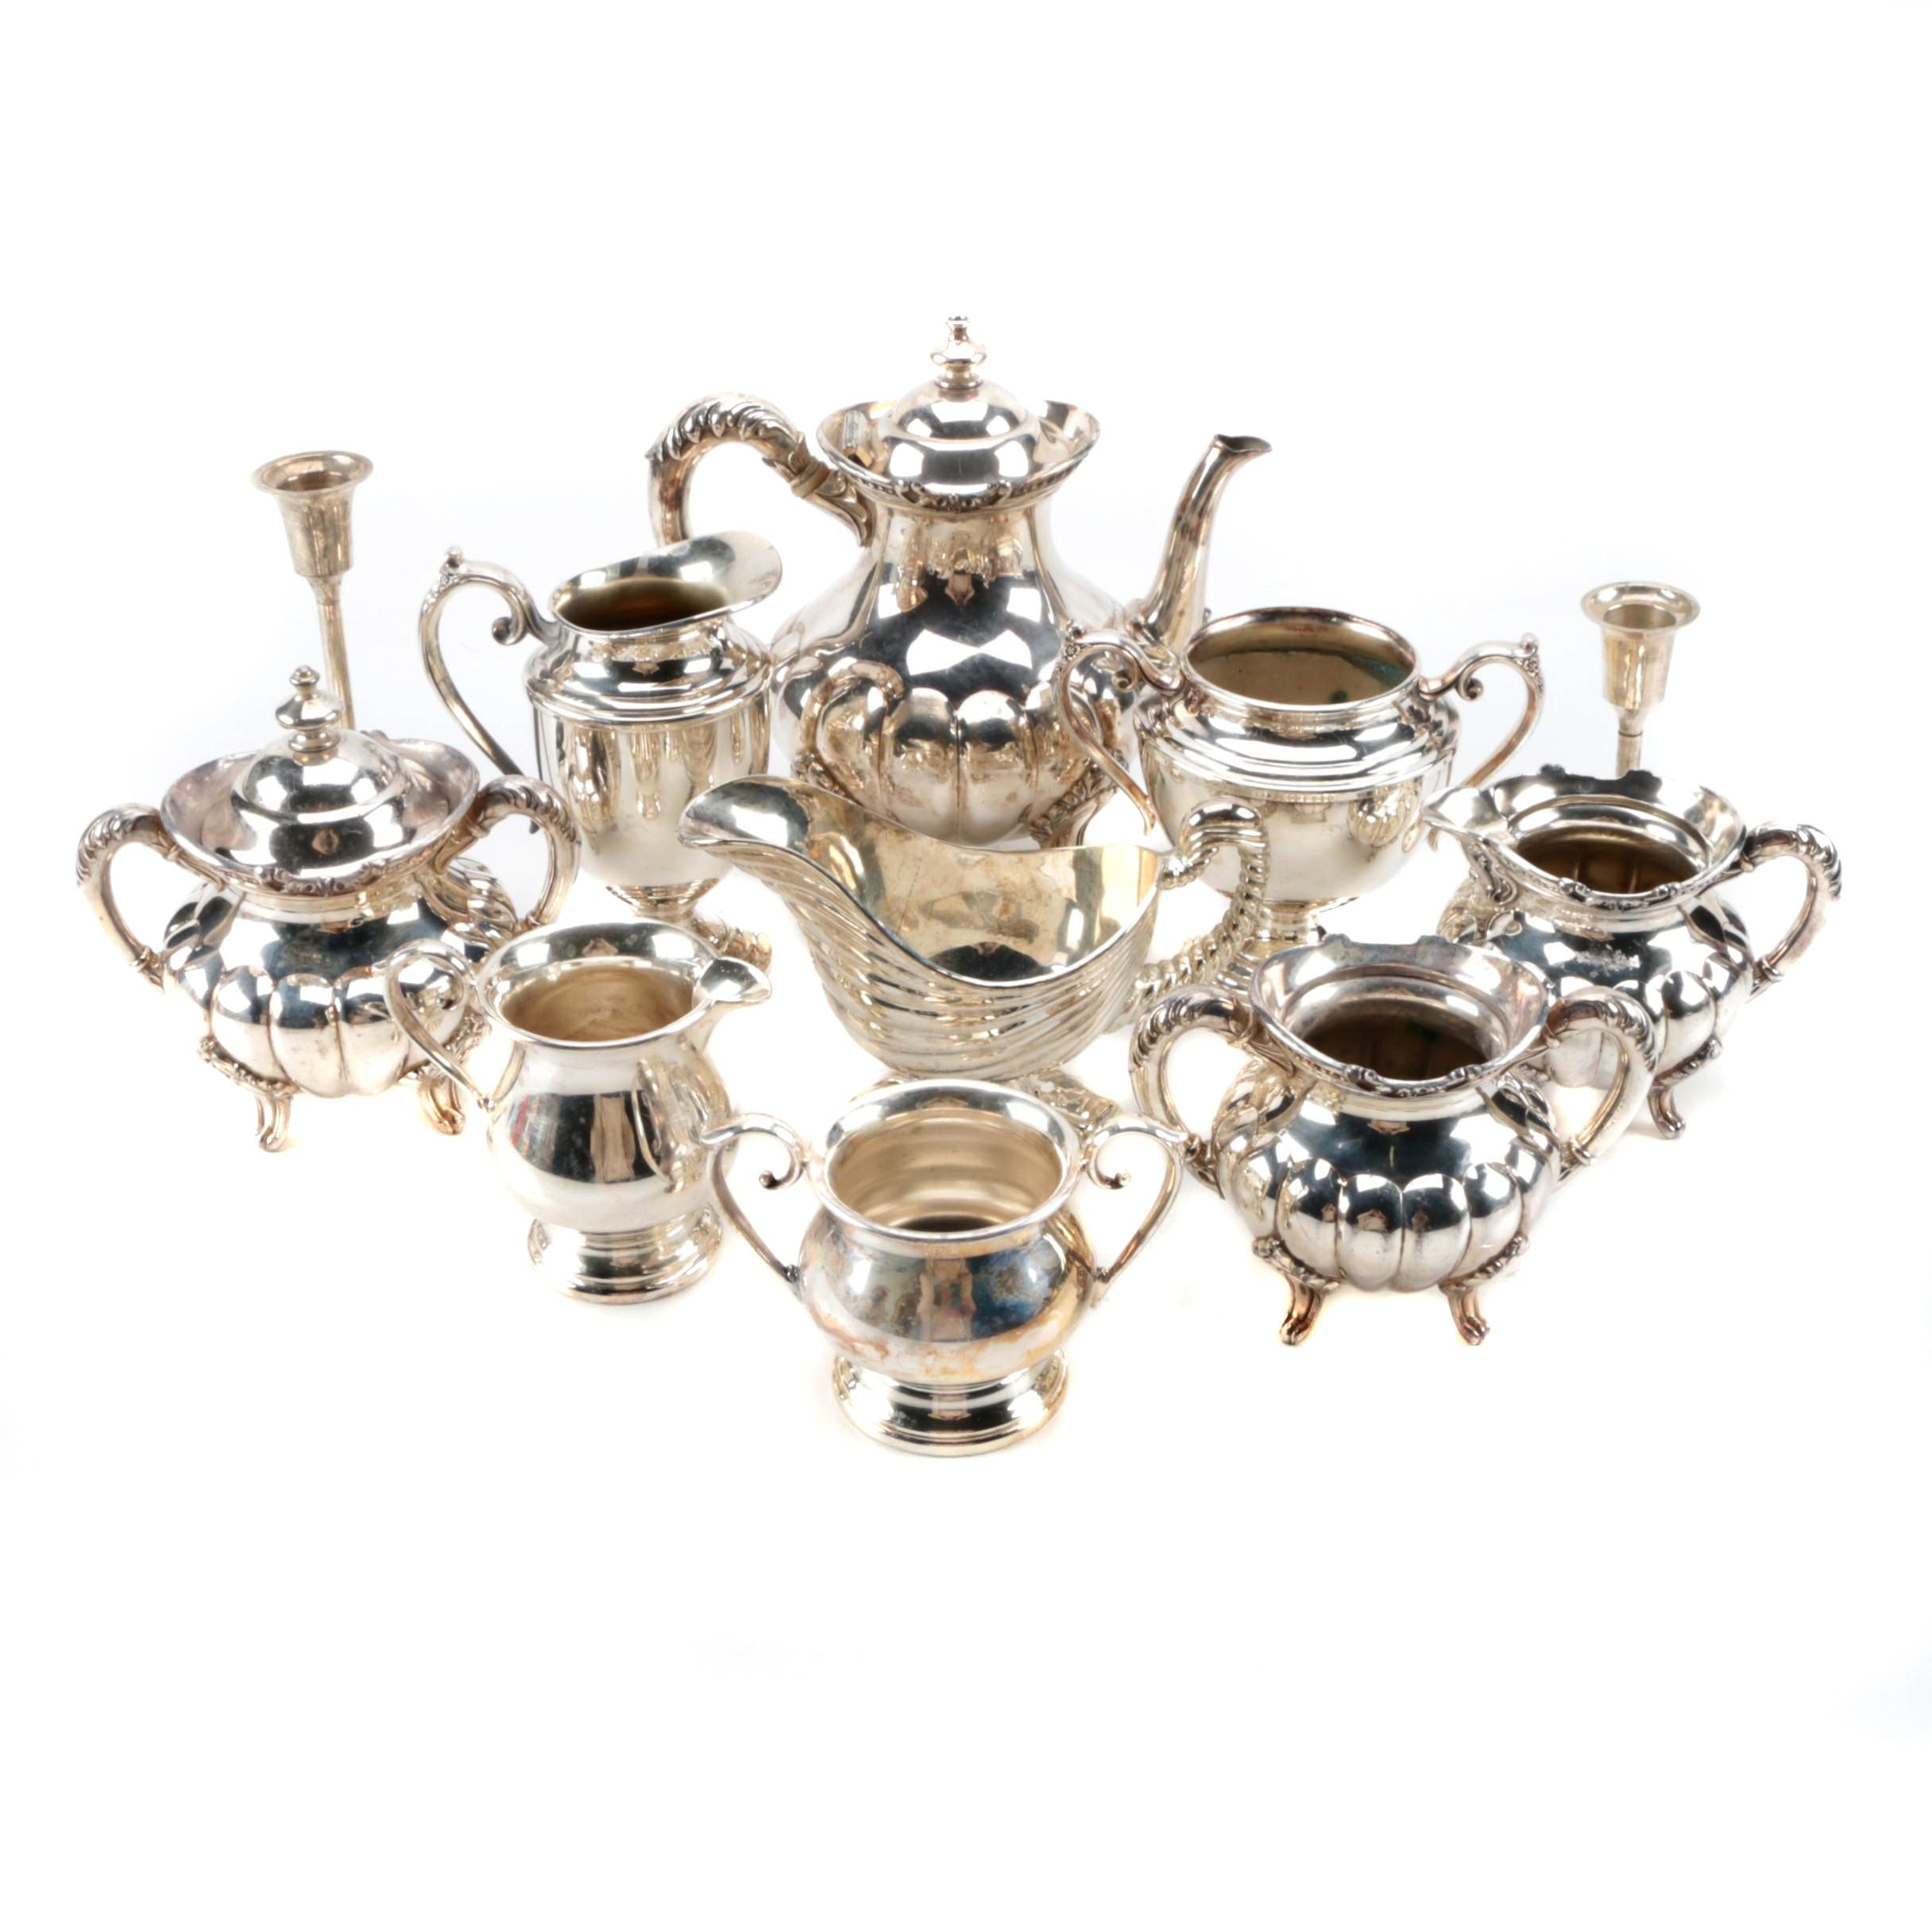 Generous Assortment of Silver Plate Serveware